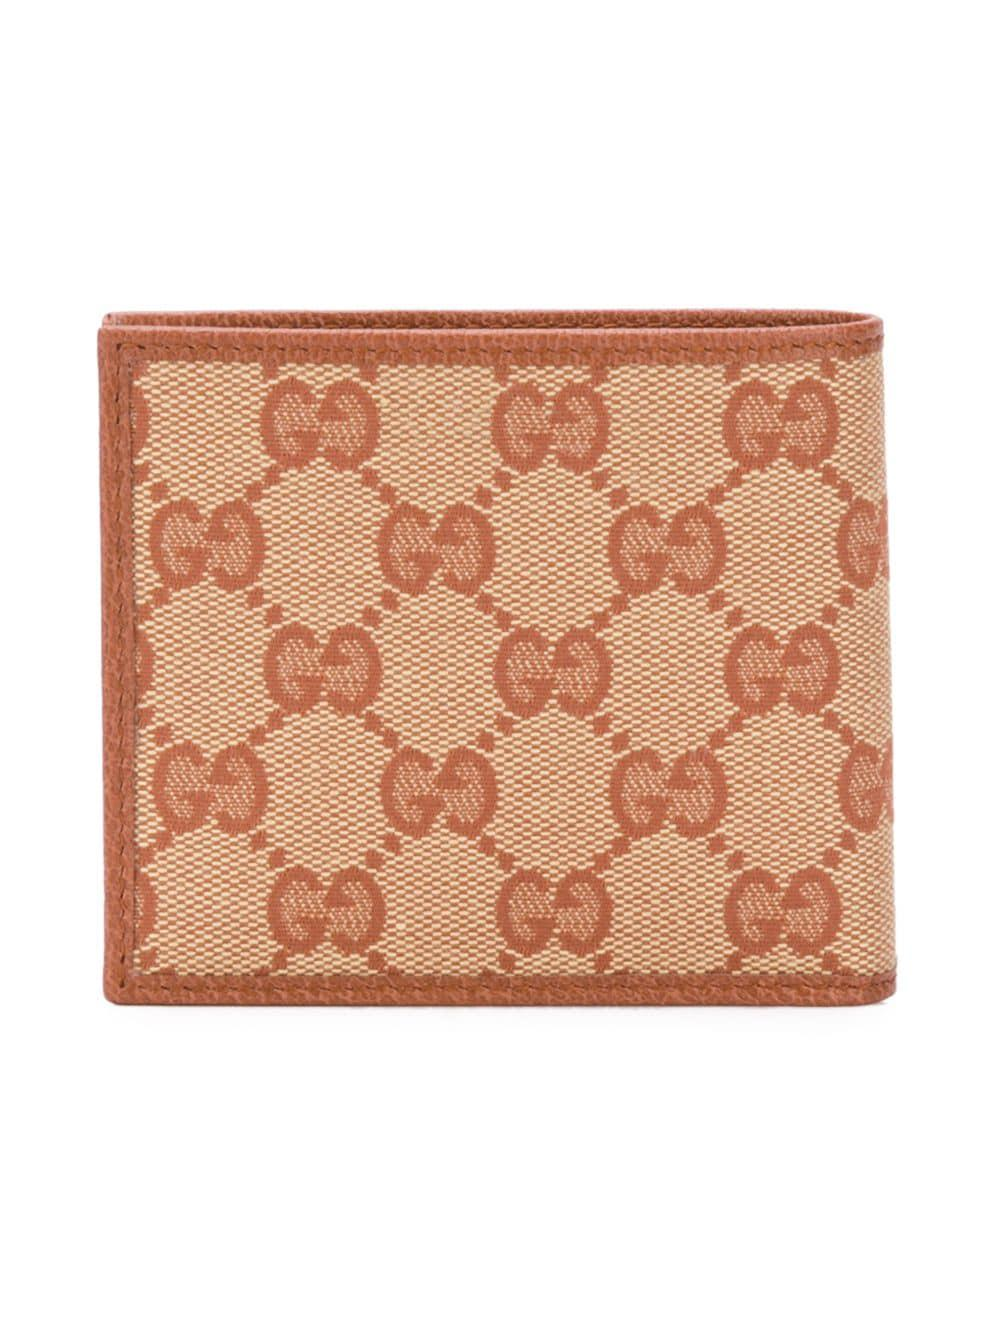 3601aff2f3763 Lyst - Gucci New York Yankees Patch Wallet in Brown for Men - Save 28%